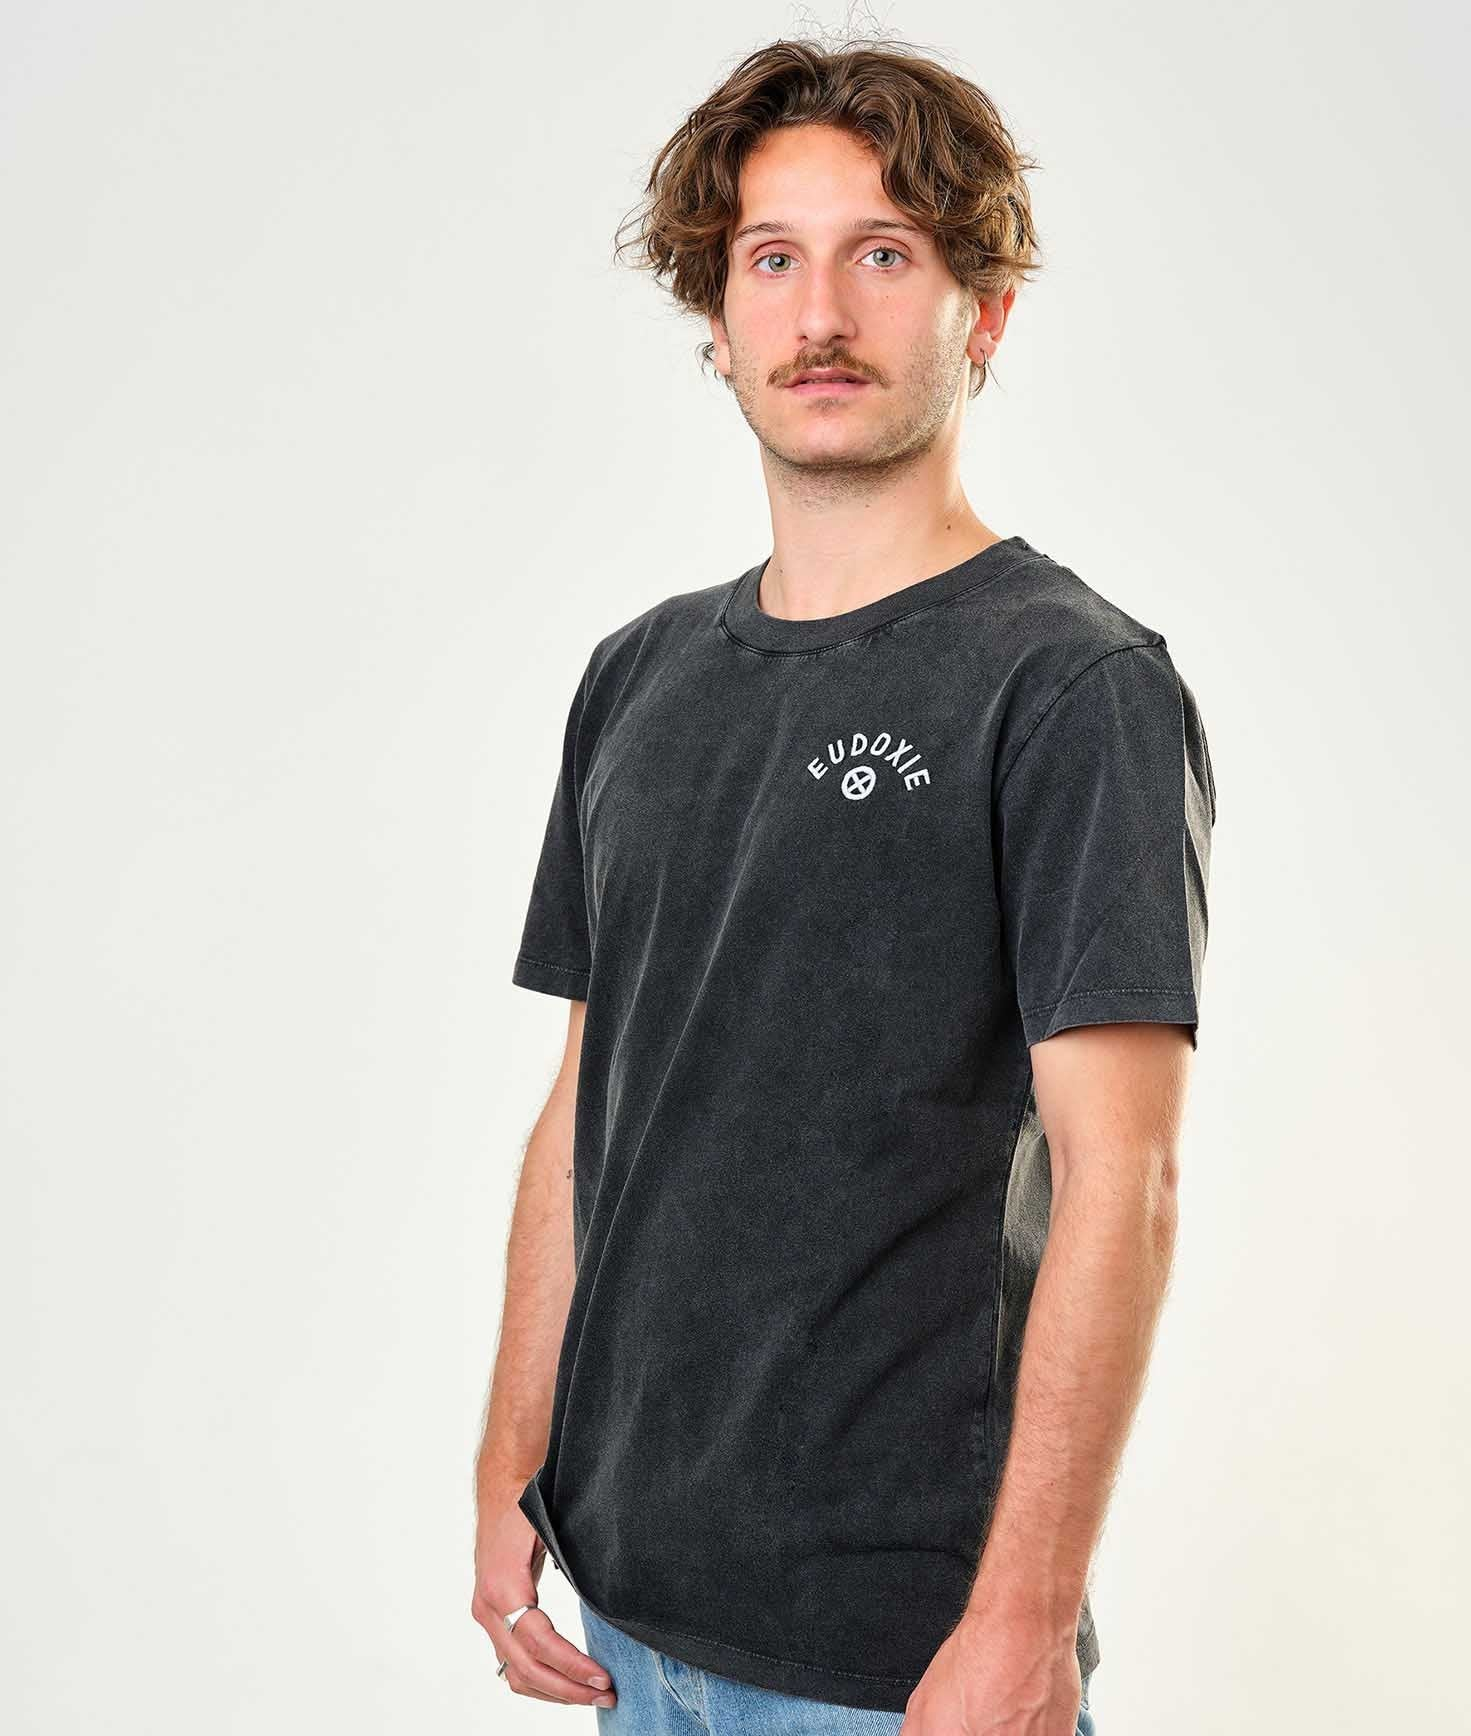 Eudoxie - Eudoxie Bonnie Black Unisex T'Shirt - T-Shirts - Salt Flats Clothing